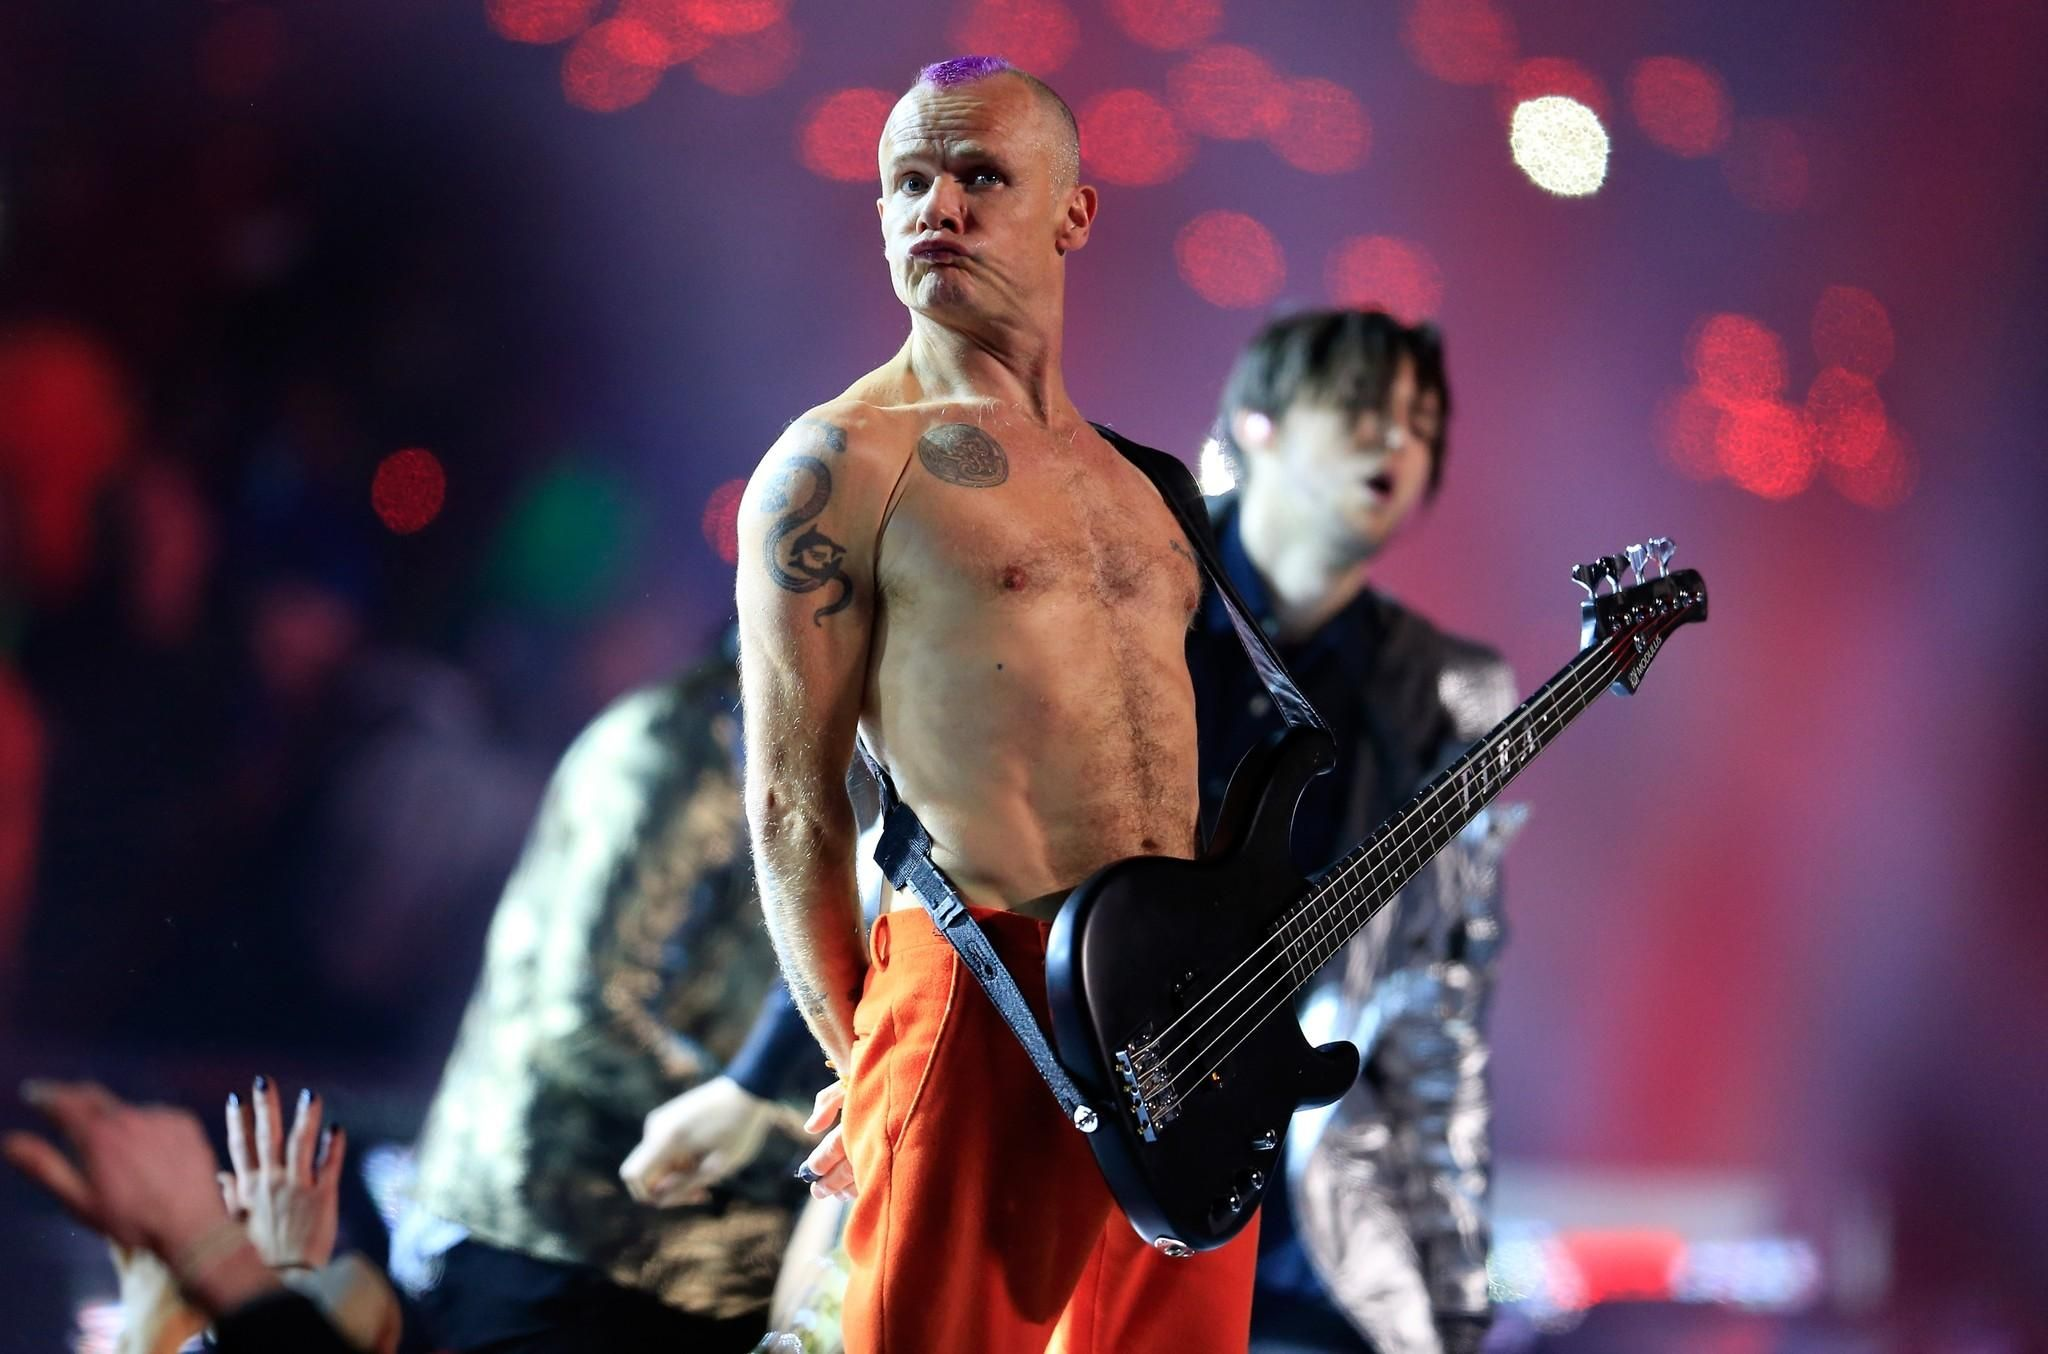 Red Hot Chili Peppers Under The Bridge Single 1962 Born On This Day Michael Balzary Flea Bass Vocals Red Hot Chili Peppers 1994 Uk No 9 Single Red Hot Chili Peppers Hottest Chili Pepper Hot Chili